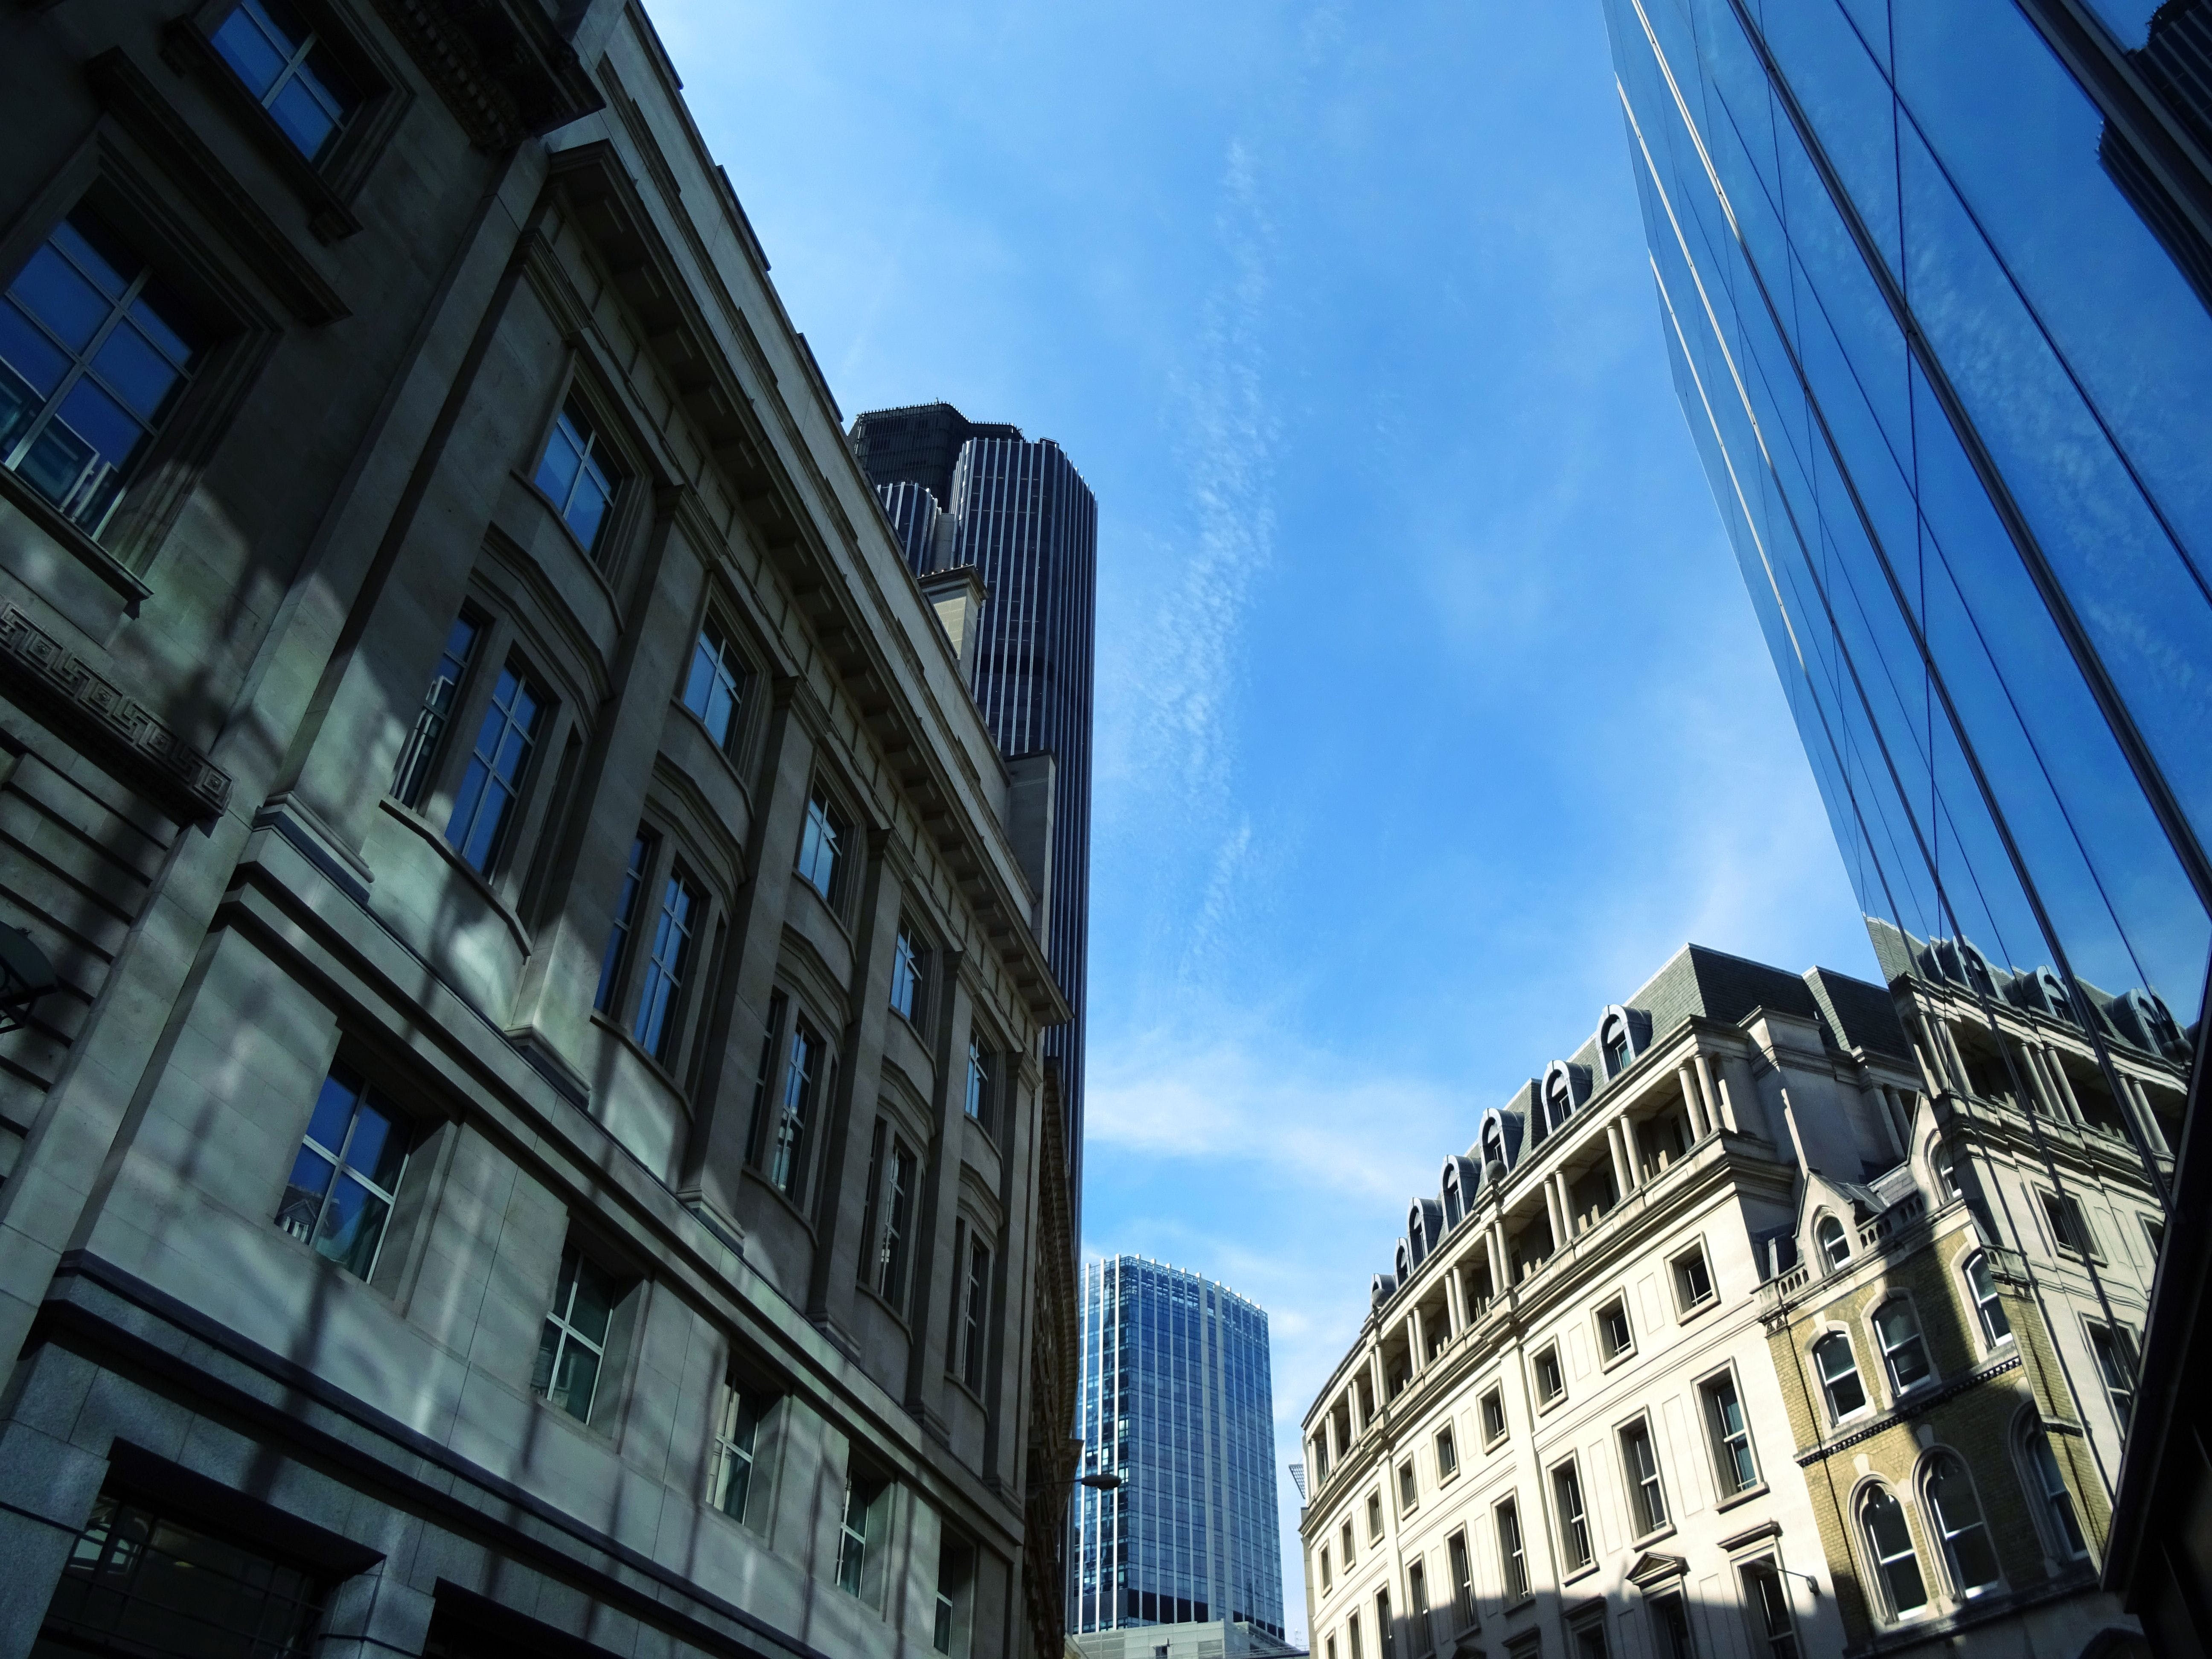 Worm's Eyeview of Gray Building